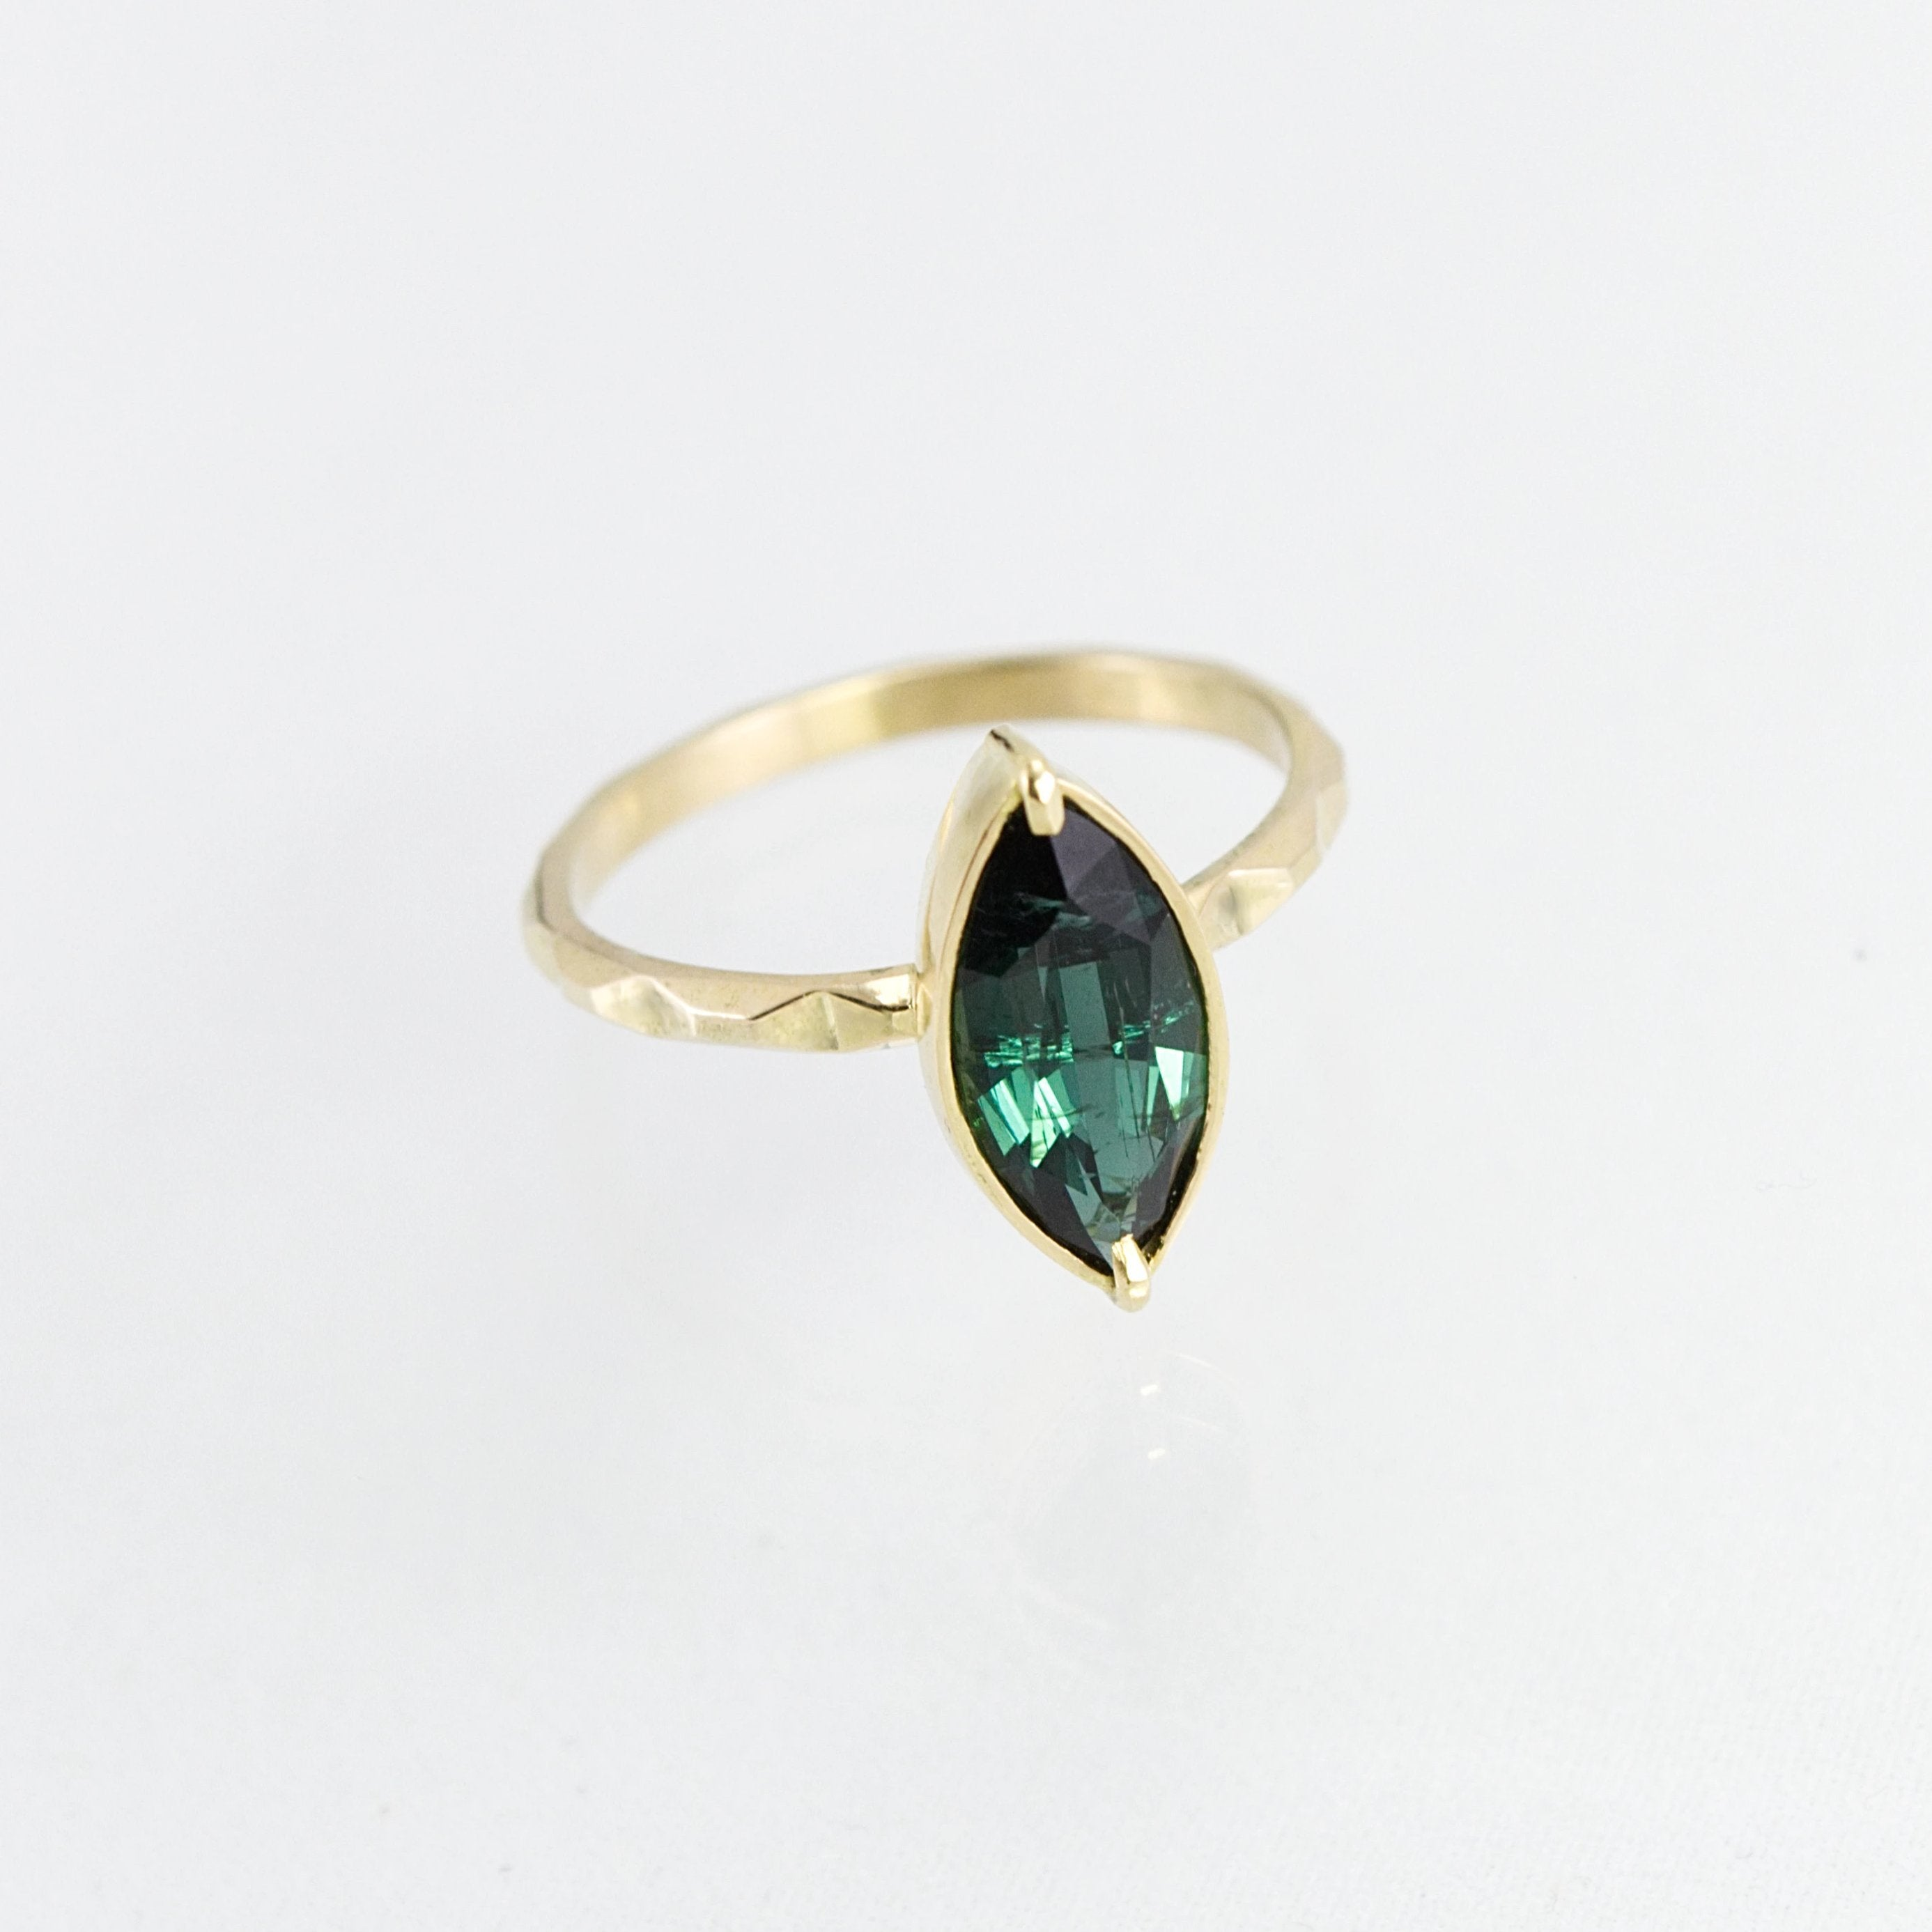 Deco Tourmaline Skinny Tile Ring - 18k - Size 7 - Phetteplace Studio